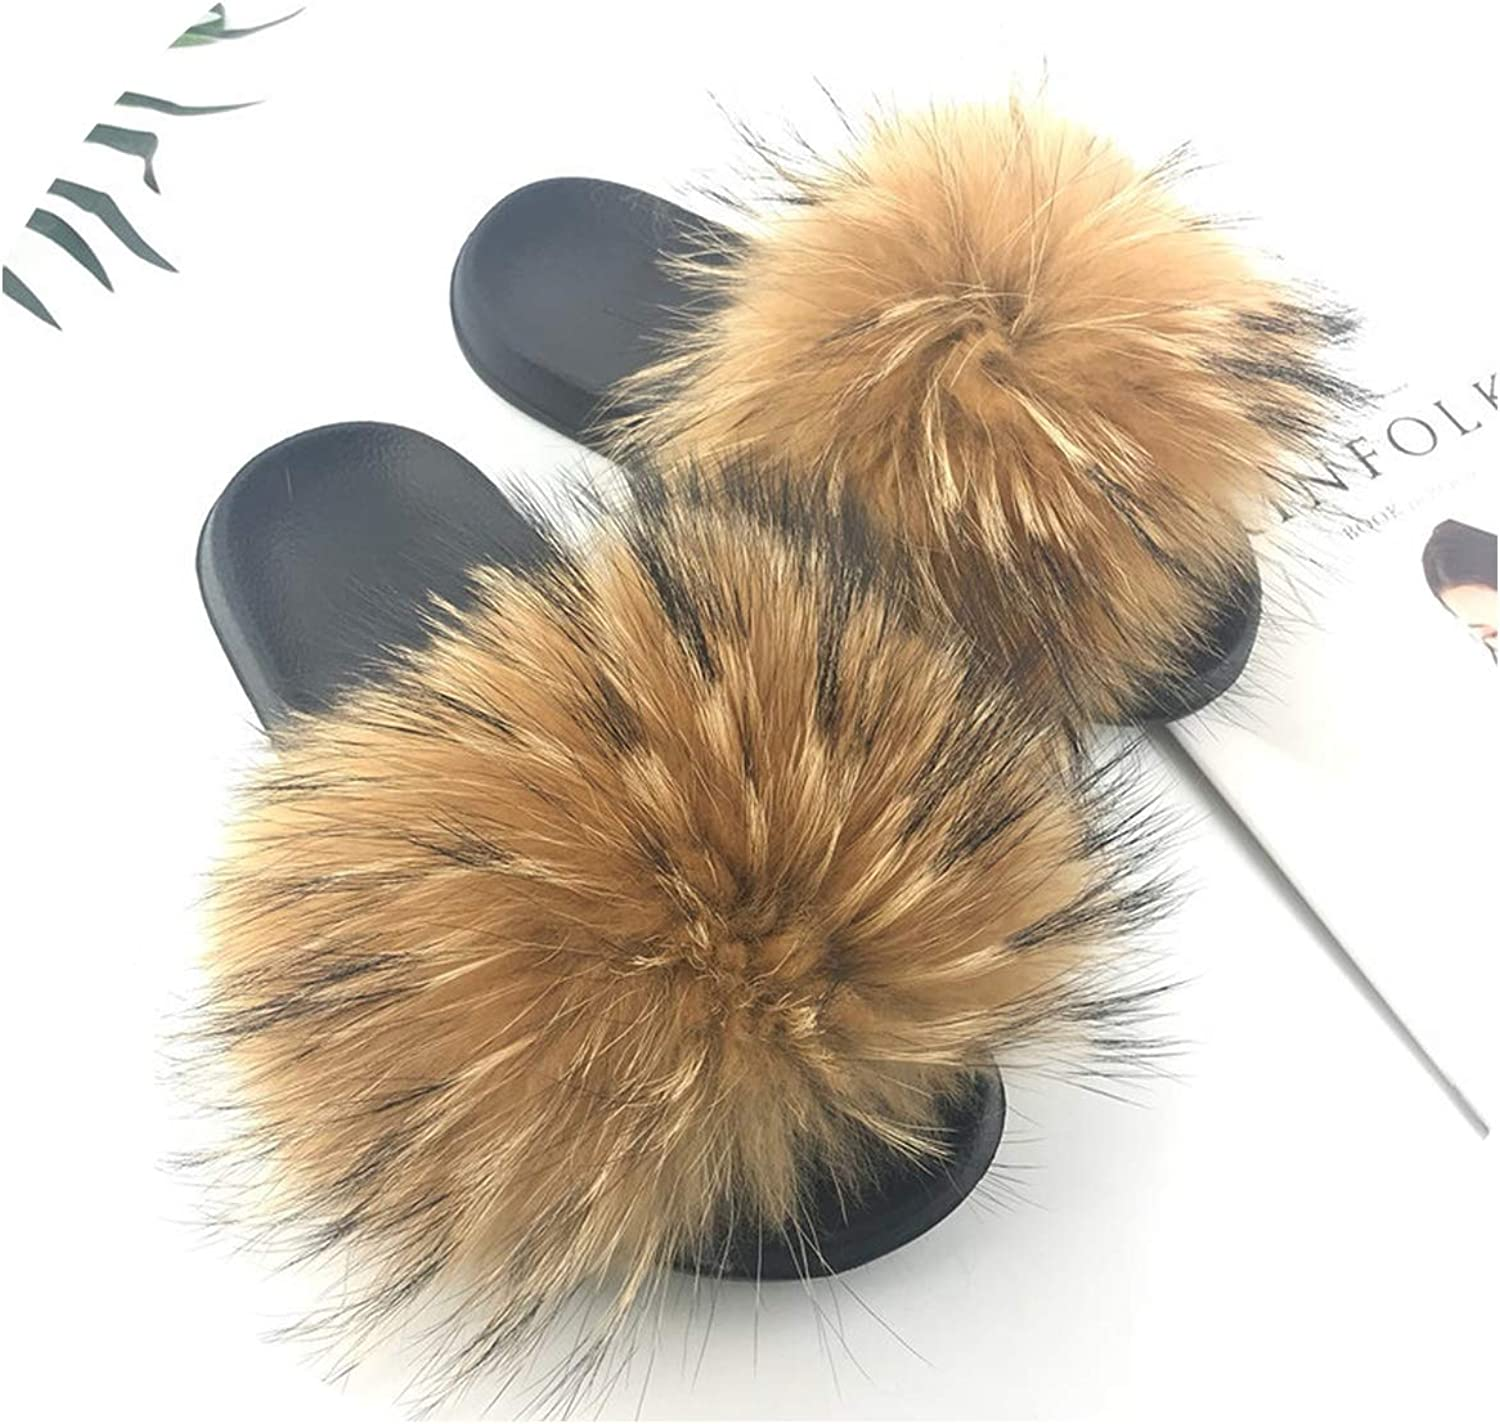 Just XiaoZhouZhou 28 colors Real Fur Slippers Women Fox Fluffy Sliders Comfort with Feathers Furry Summer Flats Sweet Ladies shoes Plus Size 36-45,11,6.5